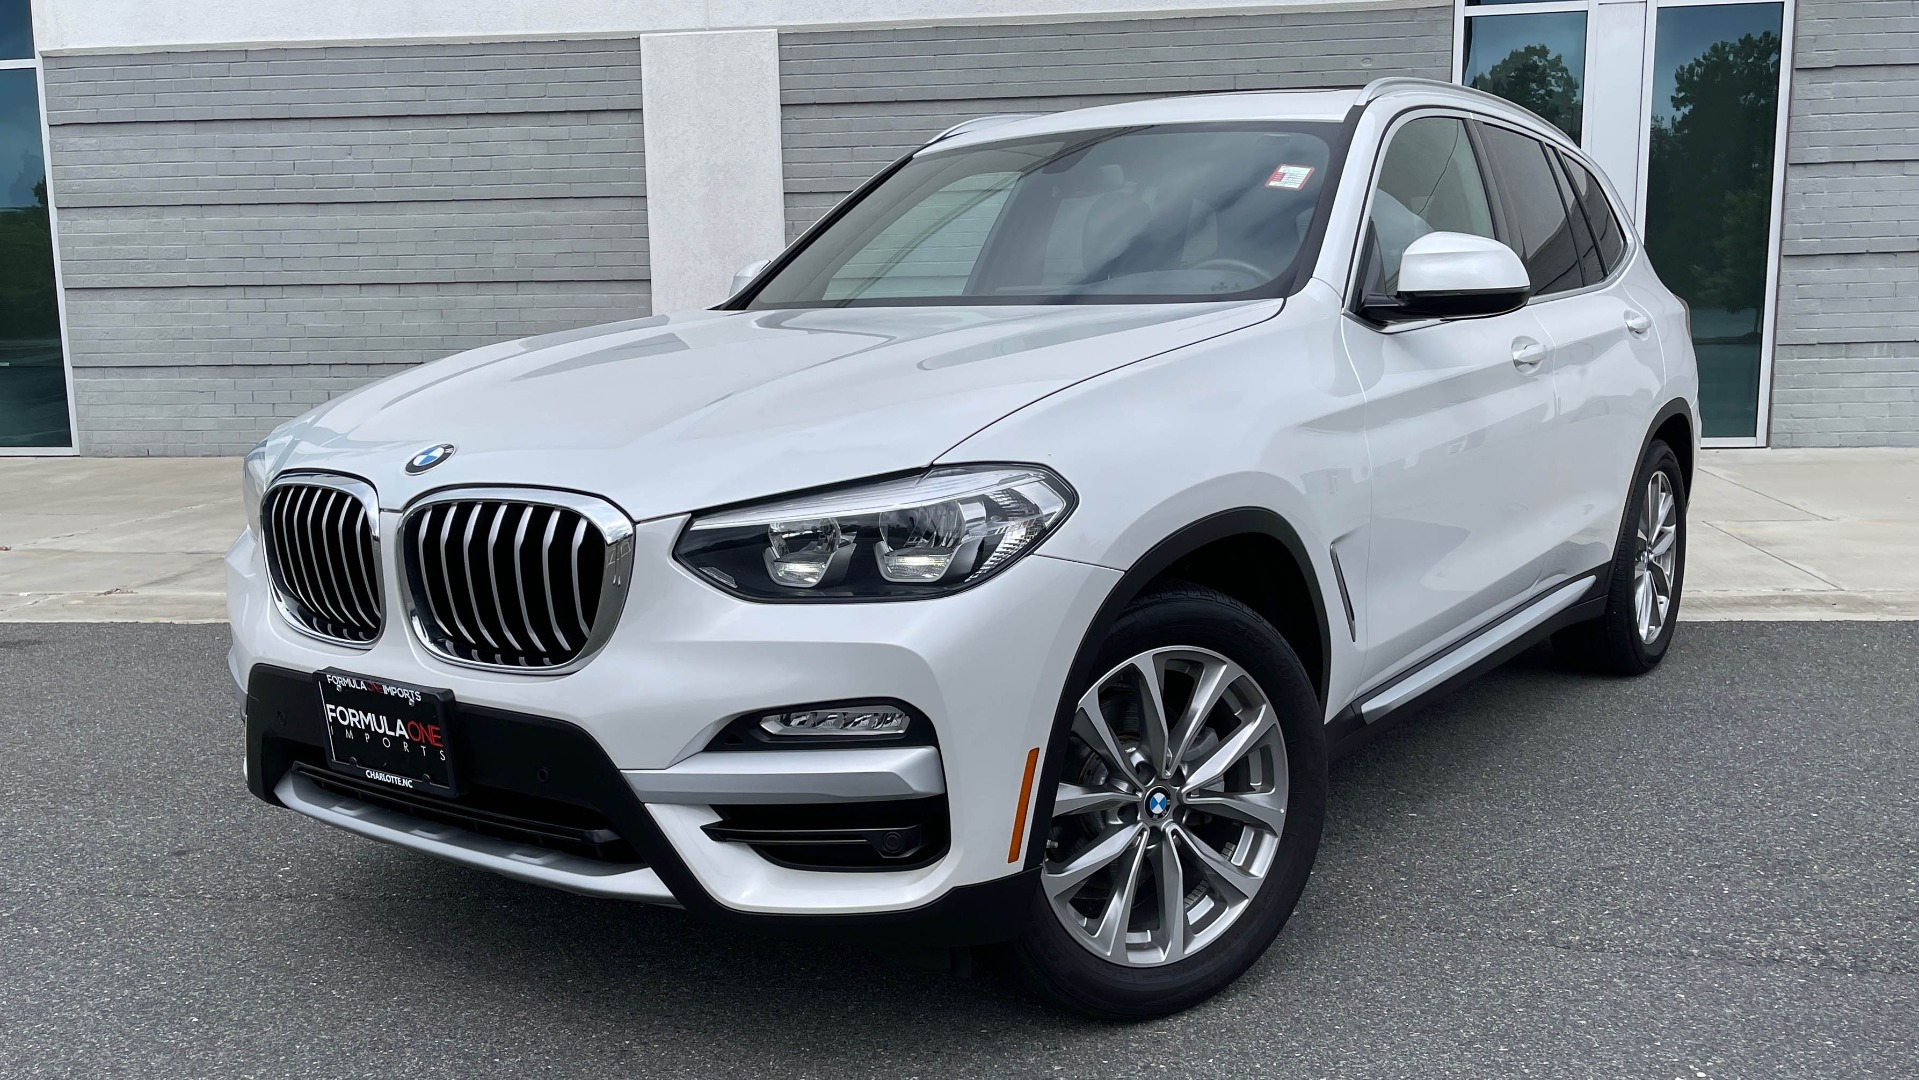 Used 2018 BMW X3 XDRIVE30I / NAV / PANO-ROOF / HTD STS / PARK DIST CNTRL / REARVIEW for sale $38,995 at Formula Imports in Charlotte NC 28227 1